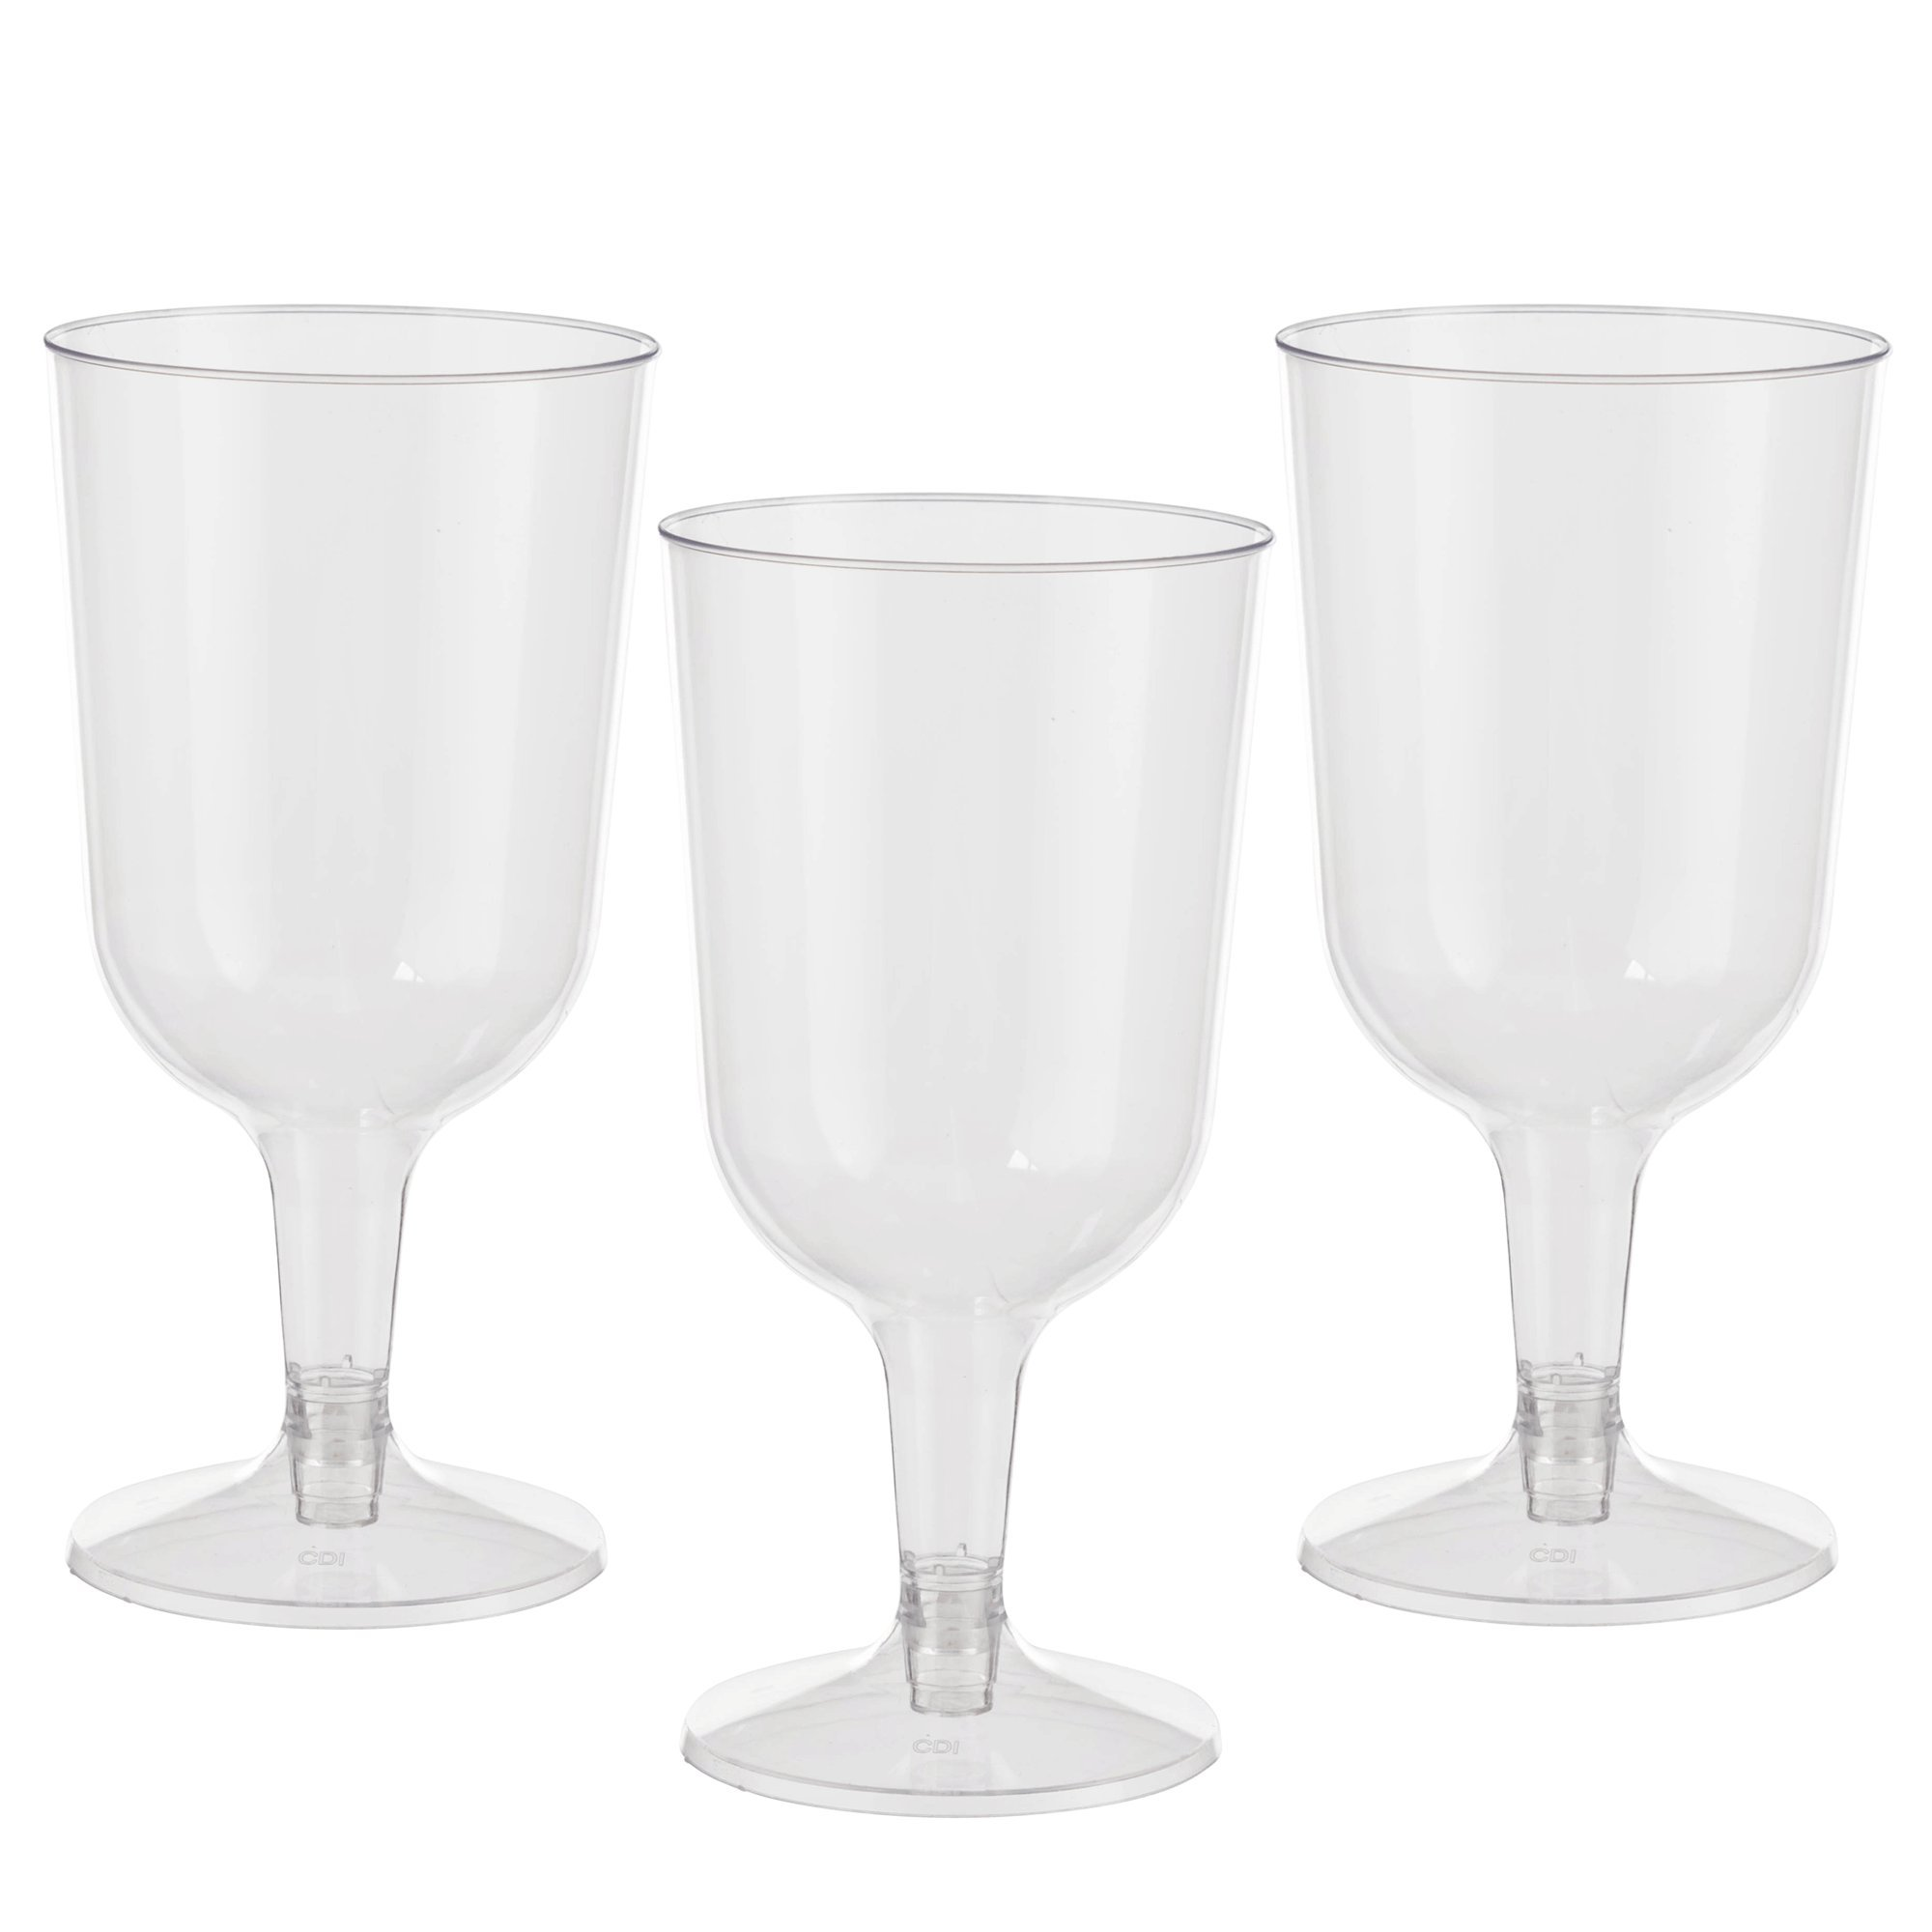 Exquisite 6 oz Clear Plastic Wine Glasses, 2 Piece Stemmed Plastic Wine Cups- 60 Count by Exquisite